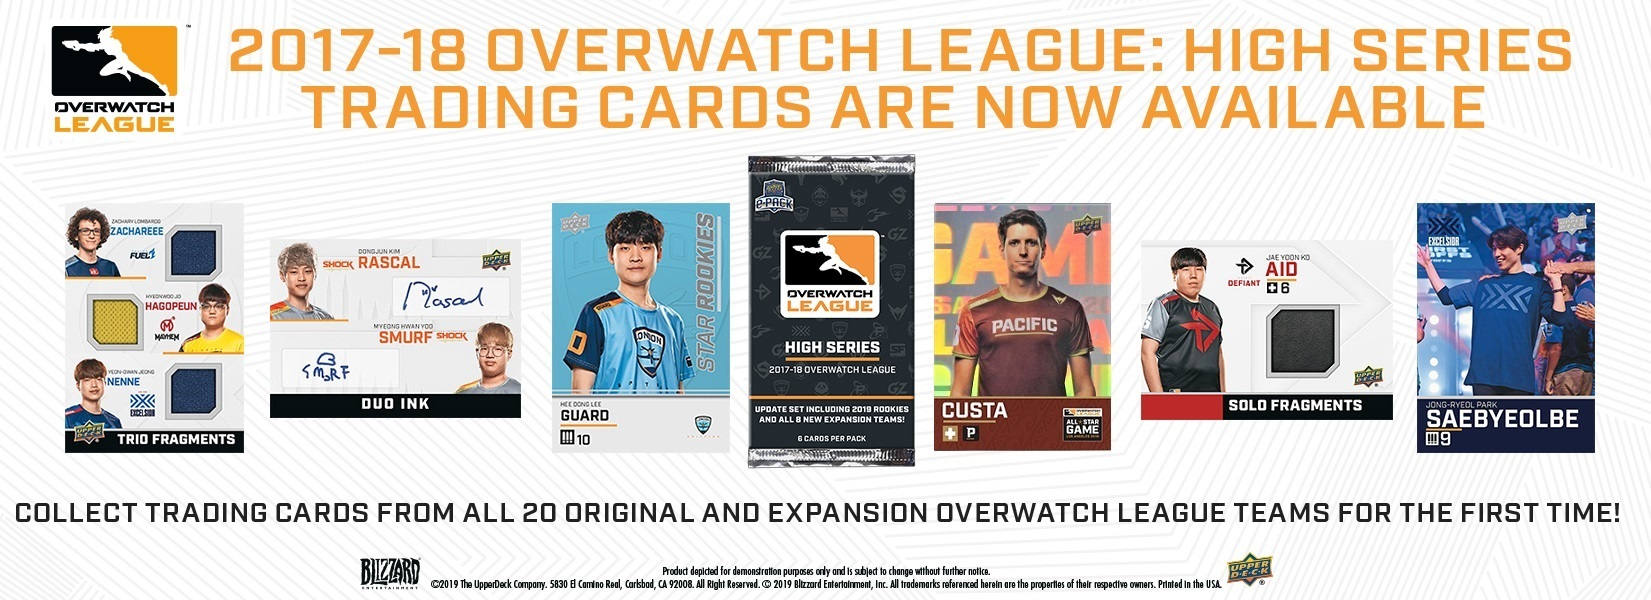 Individual players in the Overwatch League are spotlighted in an Upper Deck trading card series